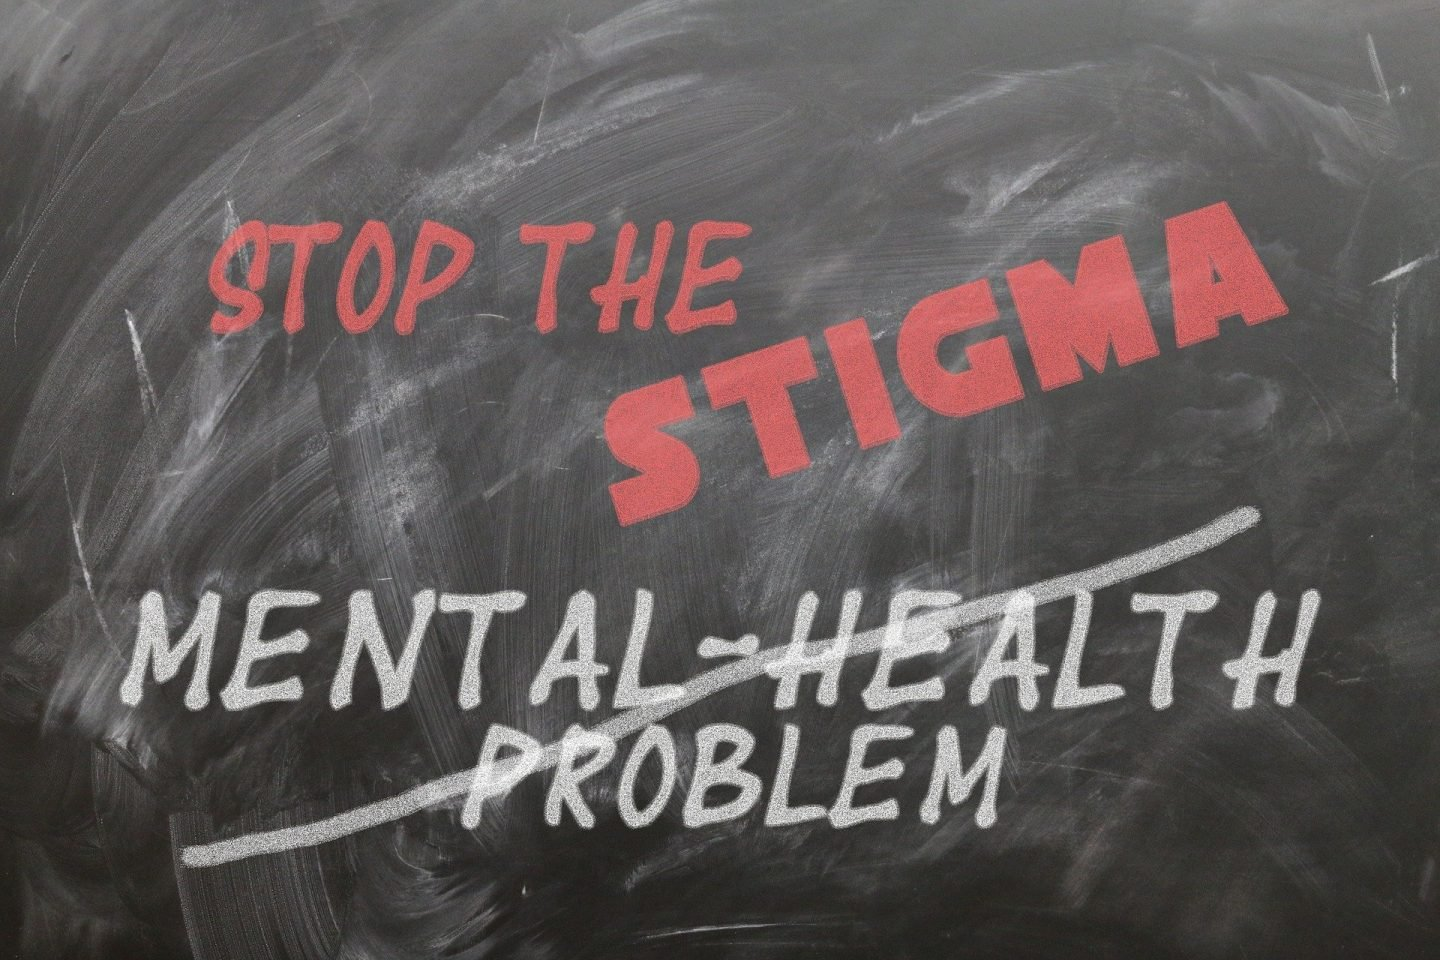 MENTAL HEALTH STOP THE STIGMA